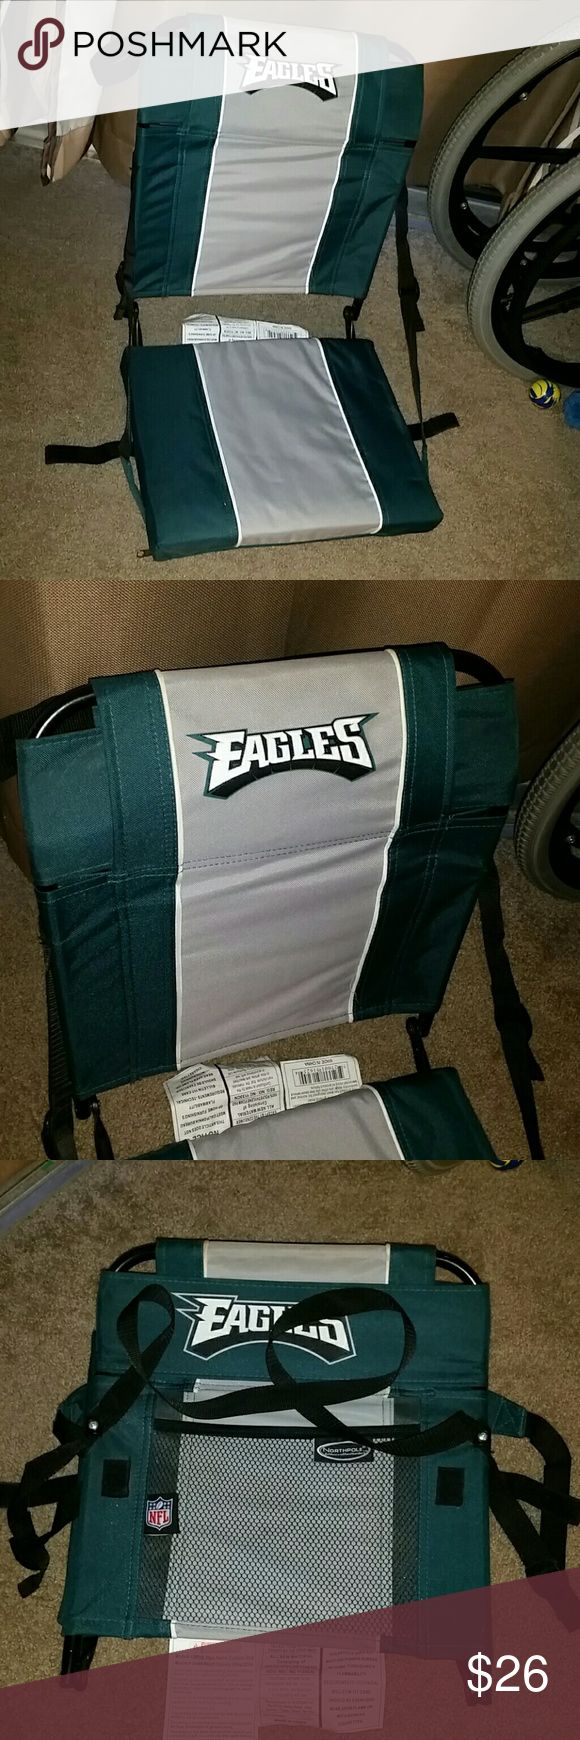 Eagles stadium seat! Price is FIRM!! This was used once for 1/2 hr!! In EXCELLENT condition, no wear! Straps on your back for an easier carry, storage compartment for your beverage, cell phone, etc! This is NOT eligible for a bundle and the price is FIRM at $25!! I'm smoke free, pug friendly and I typically ship same or next day!! Weight capacity 255 pounds! NFL Other